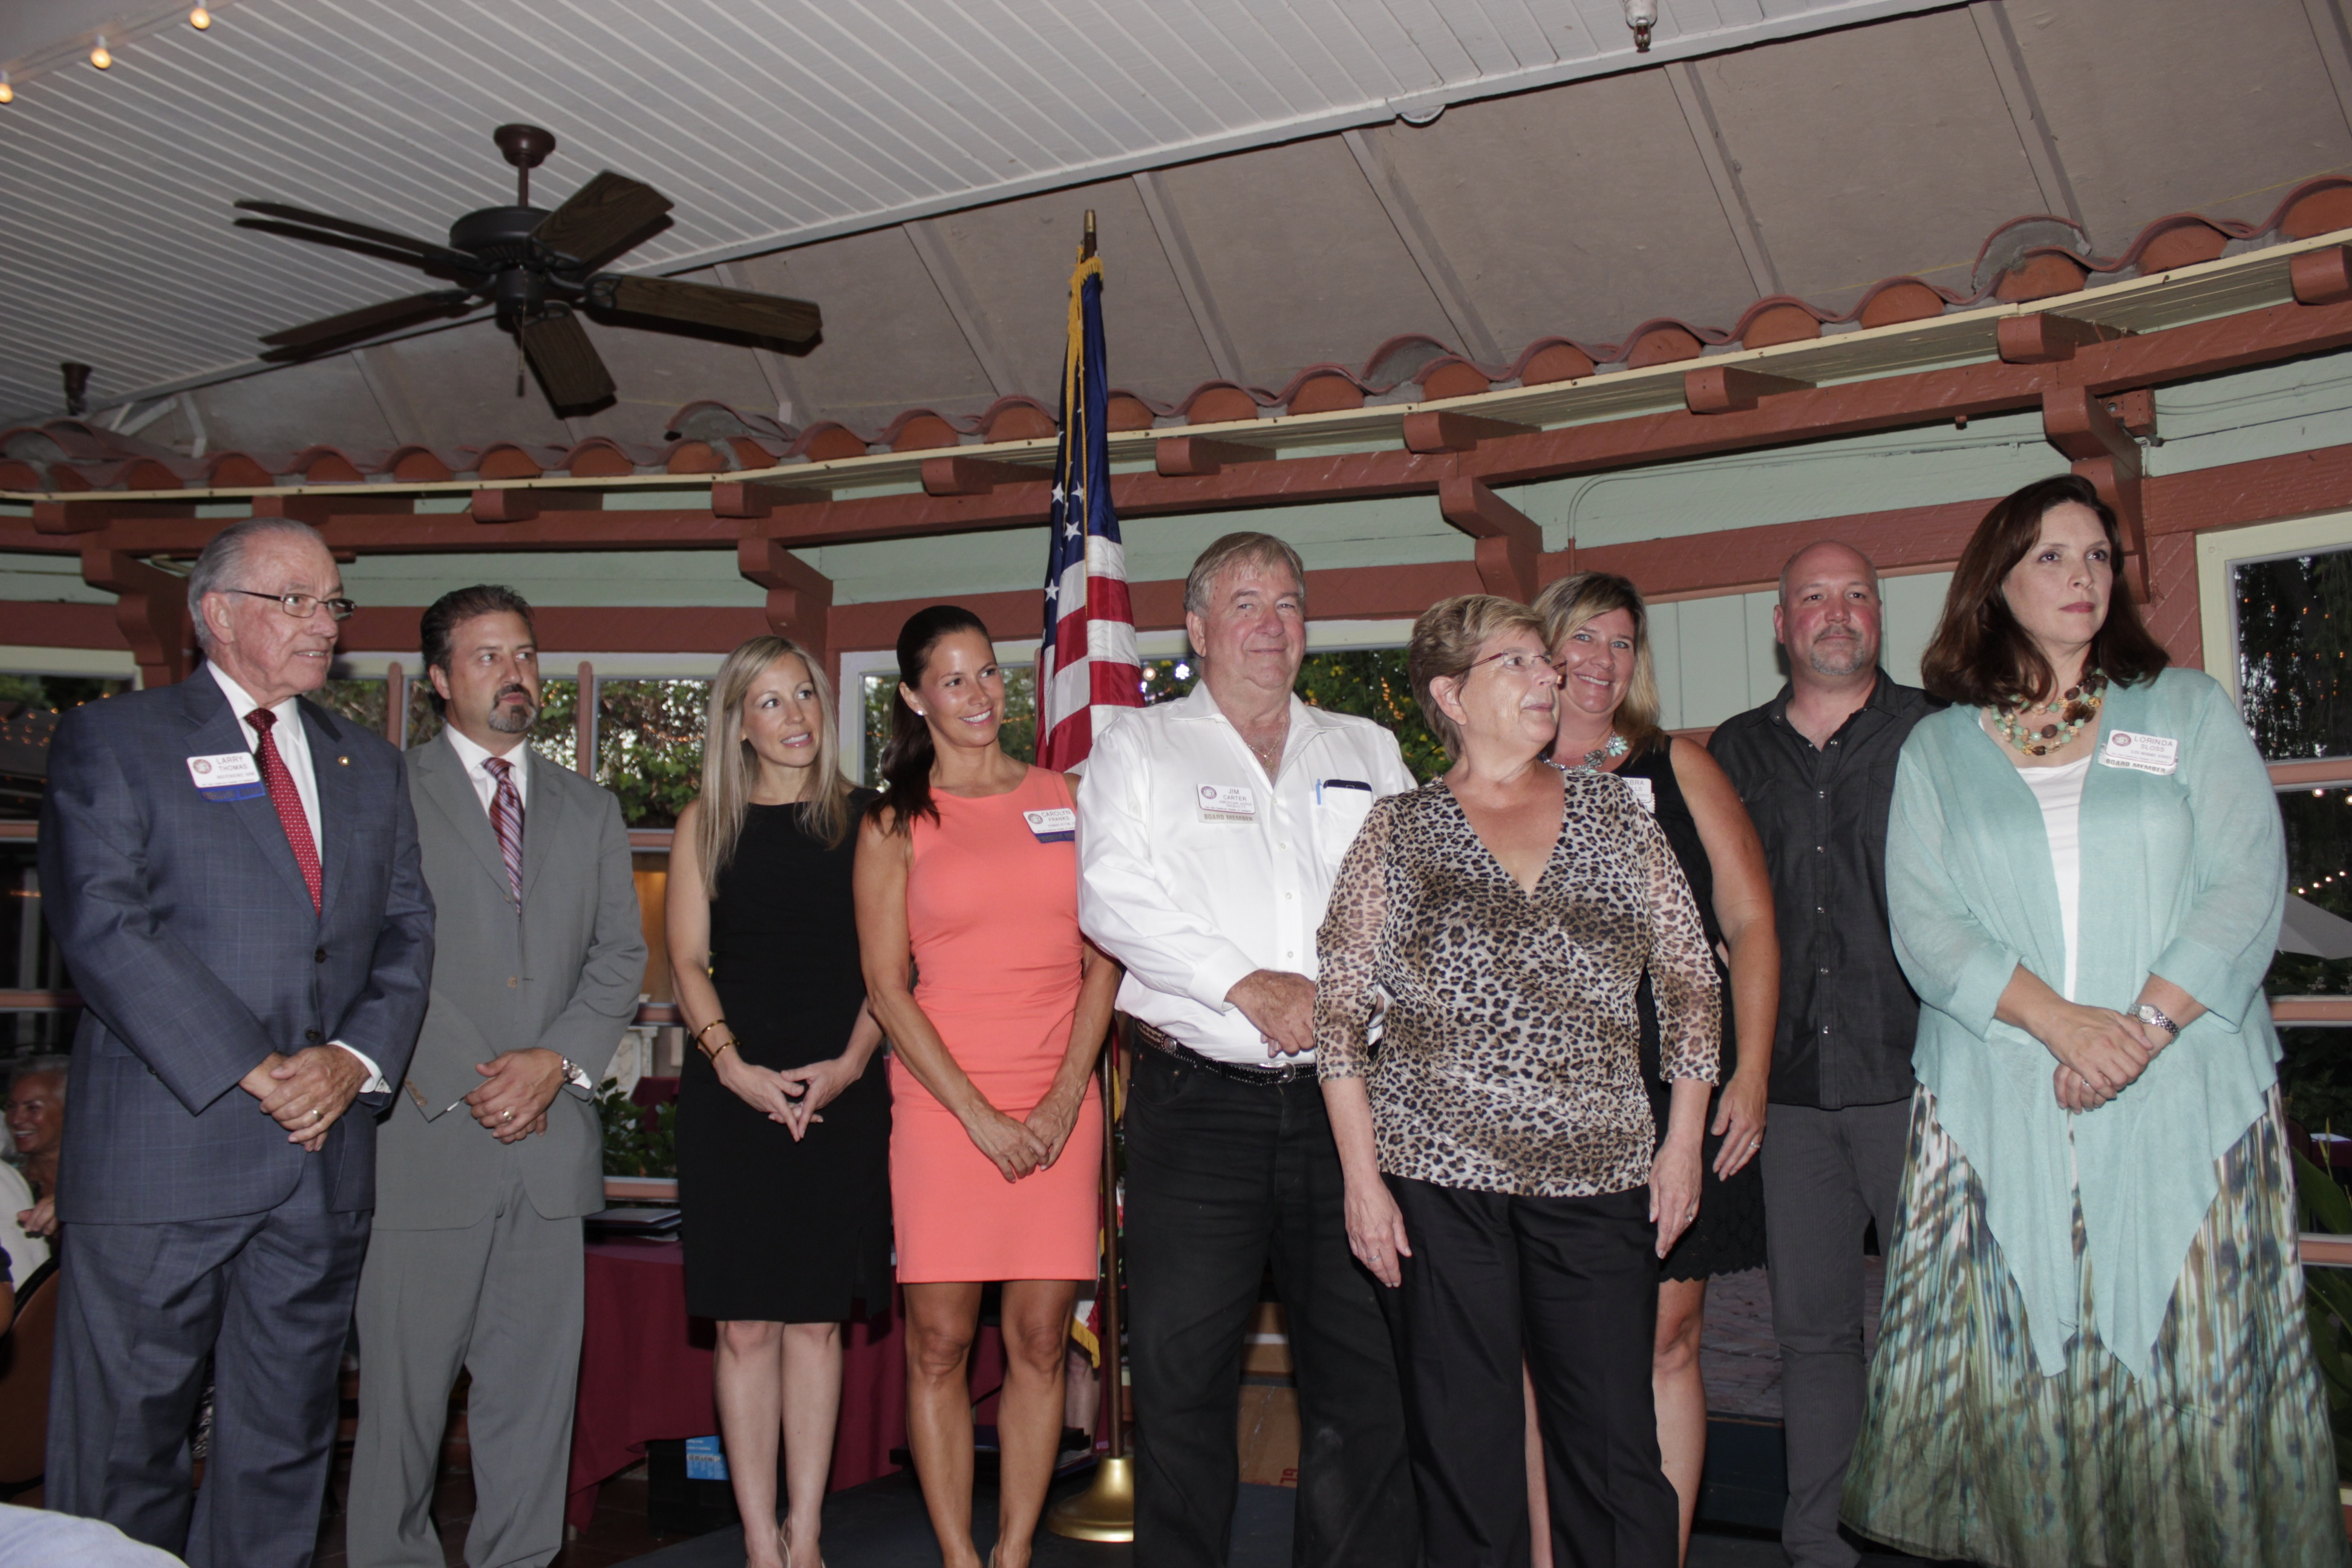 The new board of directors for the San Juan Capistrano Chamber of Commerce. Photo: Brian Park